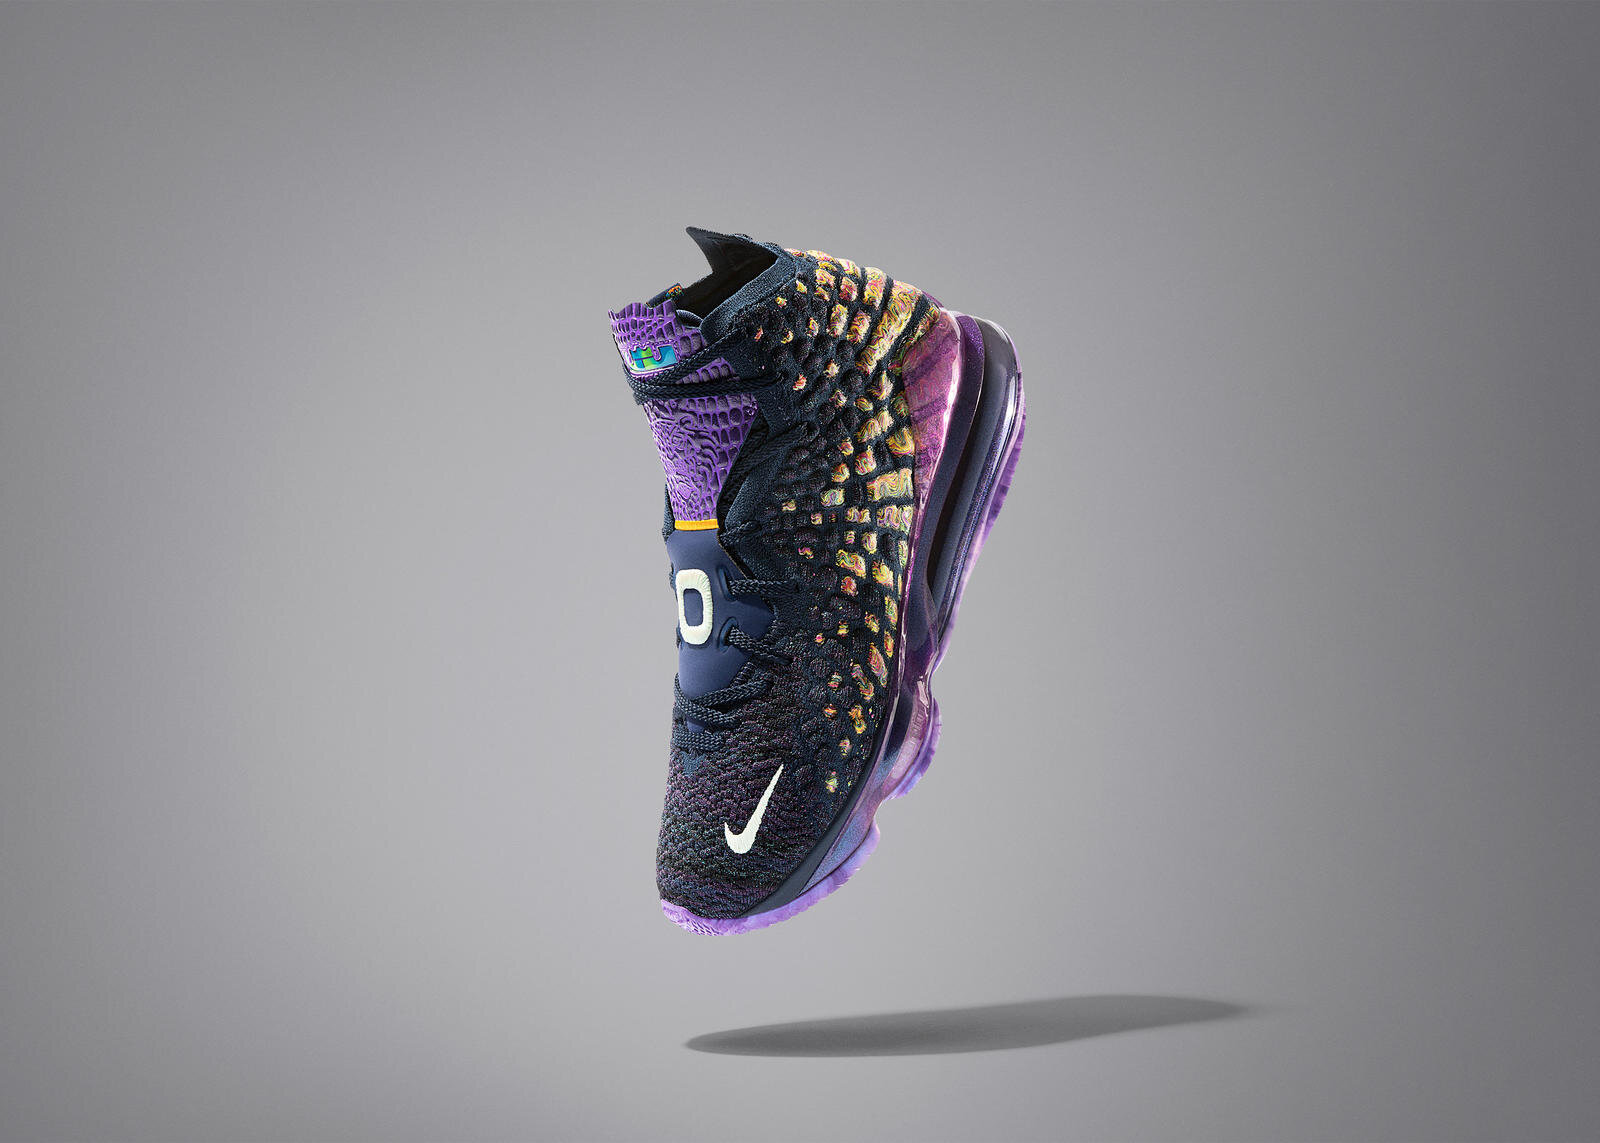 airhead adidas cleats Shop Clothing